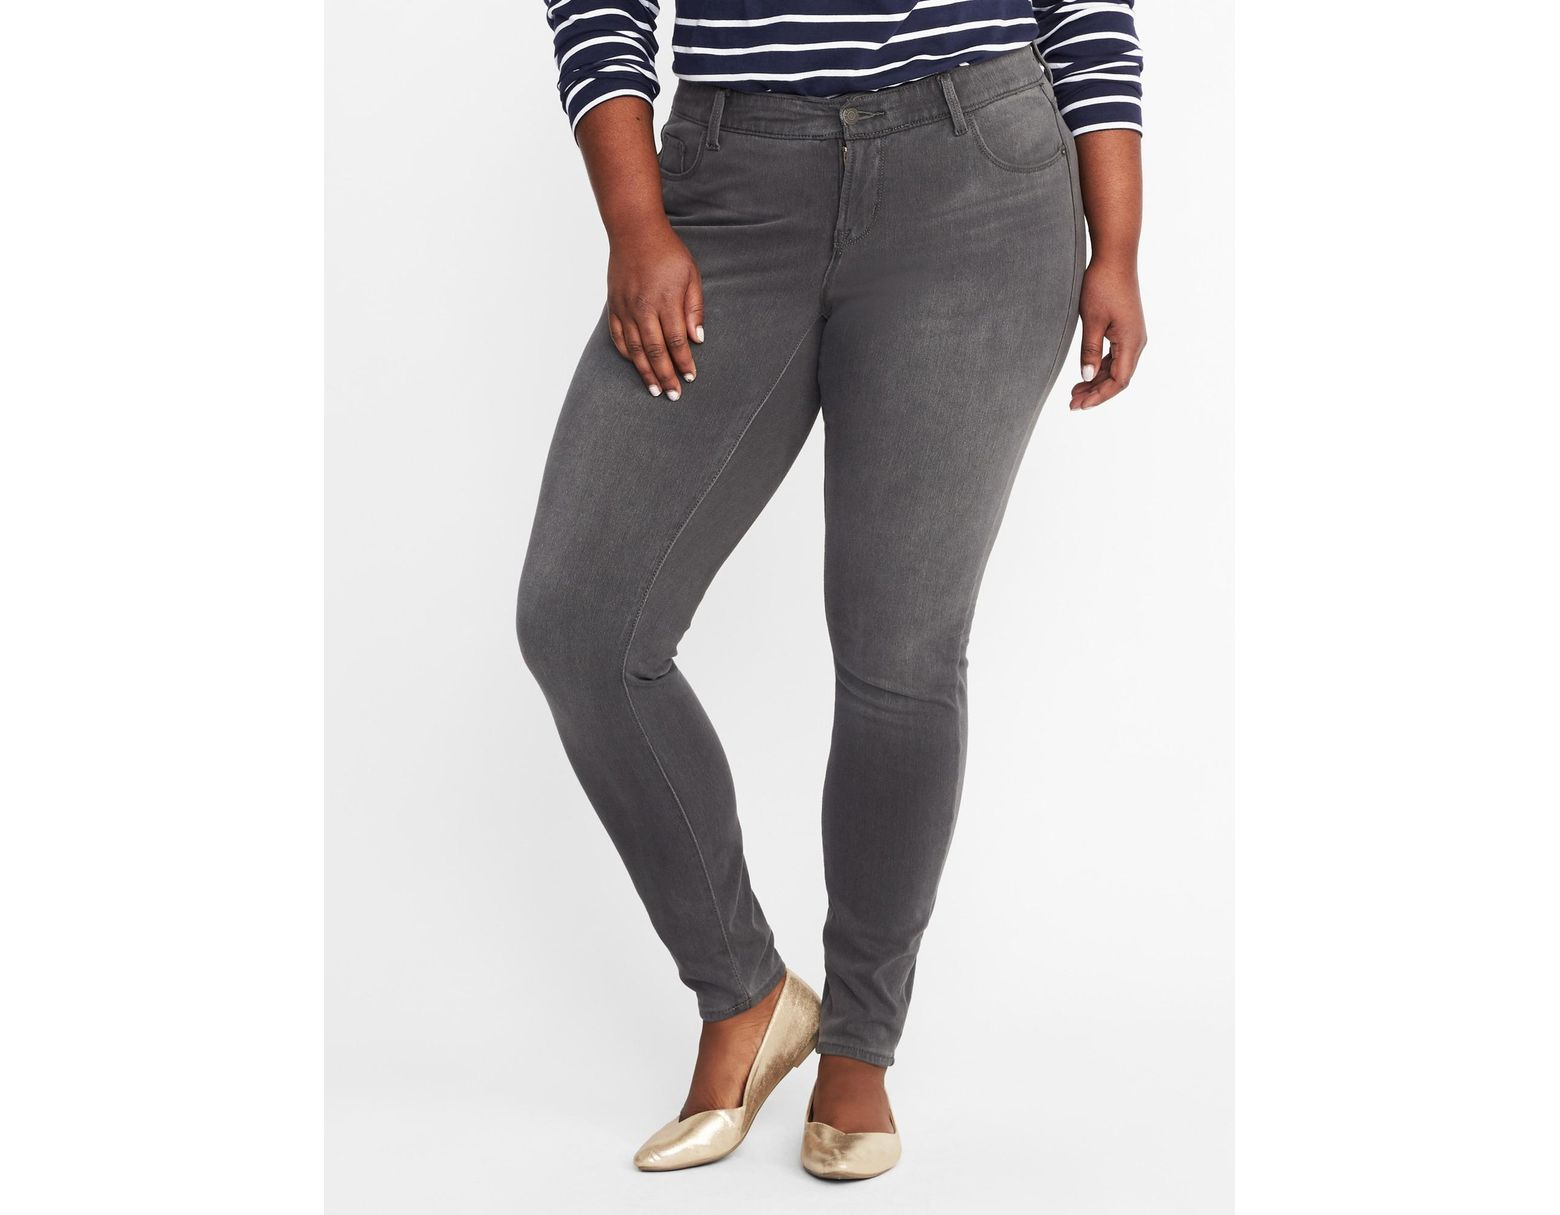 f4570c0b843316 Old Navy High-rise Secret-slim Pockets + Waistband Plus-size Rockstar 24/7  Jeans in Gray - Lyst